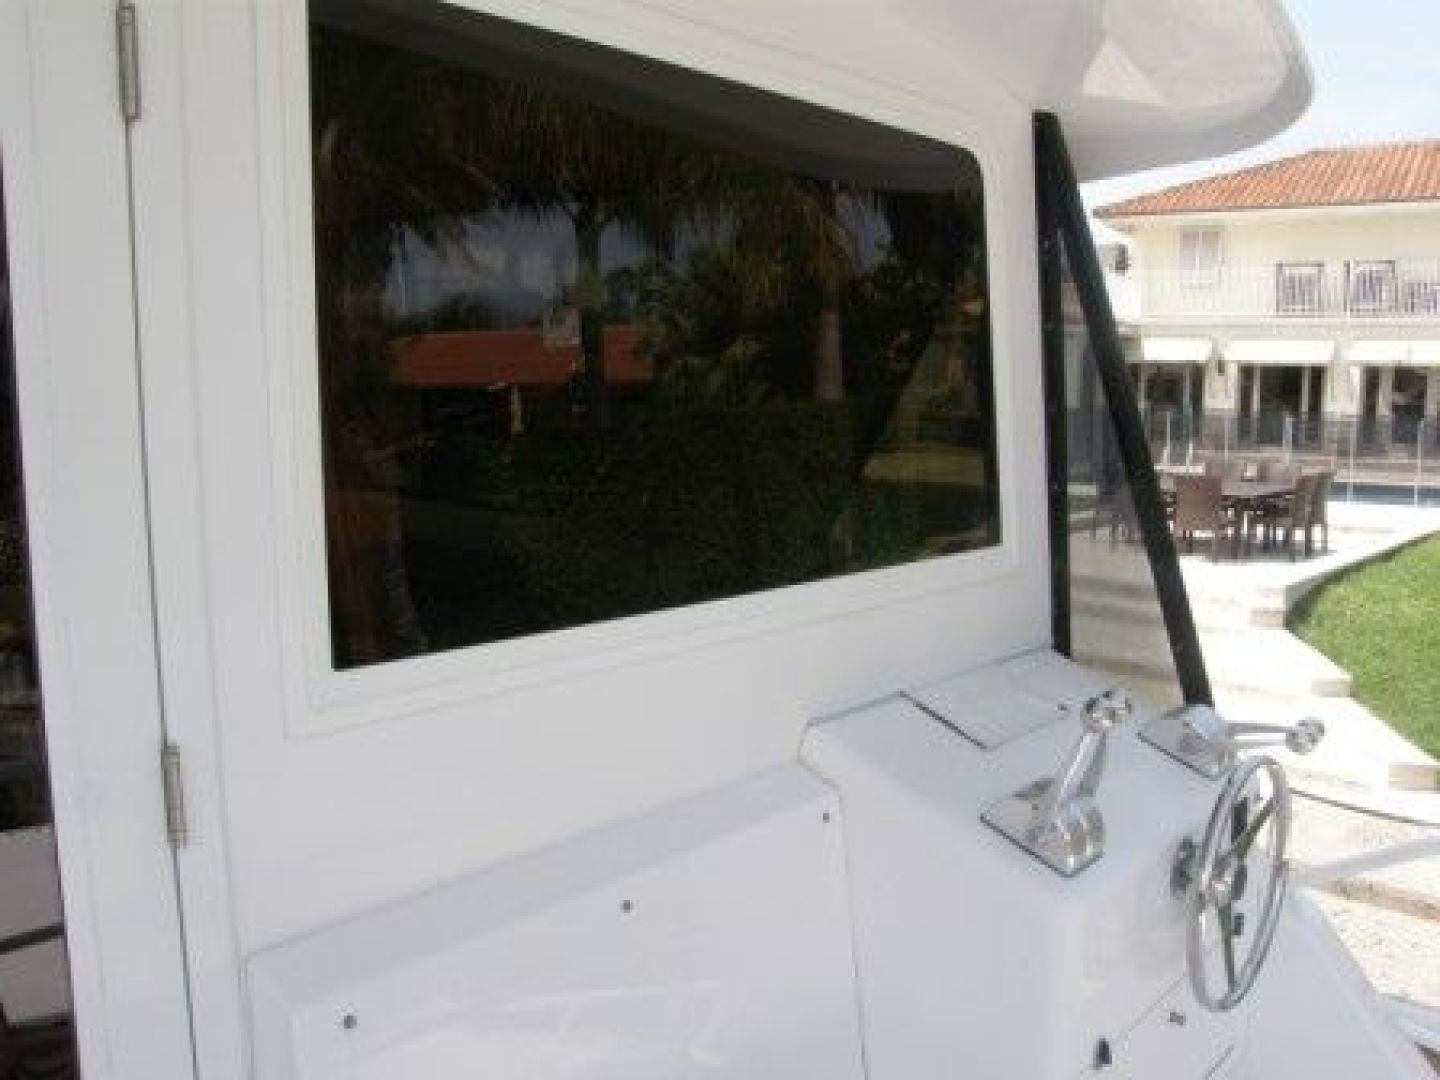 Bertram-Enclosed Flybridge 1997-Off Season Miami-United States-Exterior Helm Station-435879 | Thumbnail